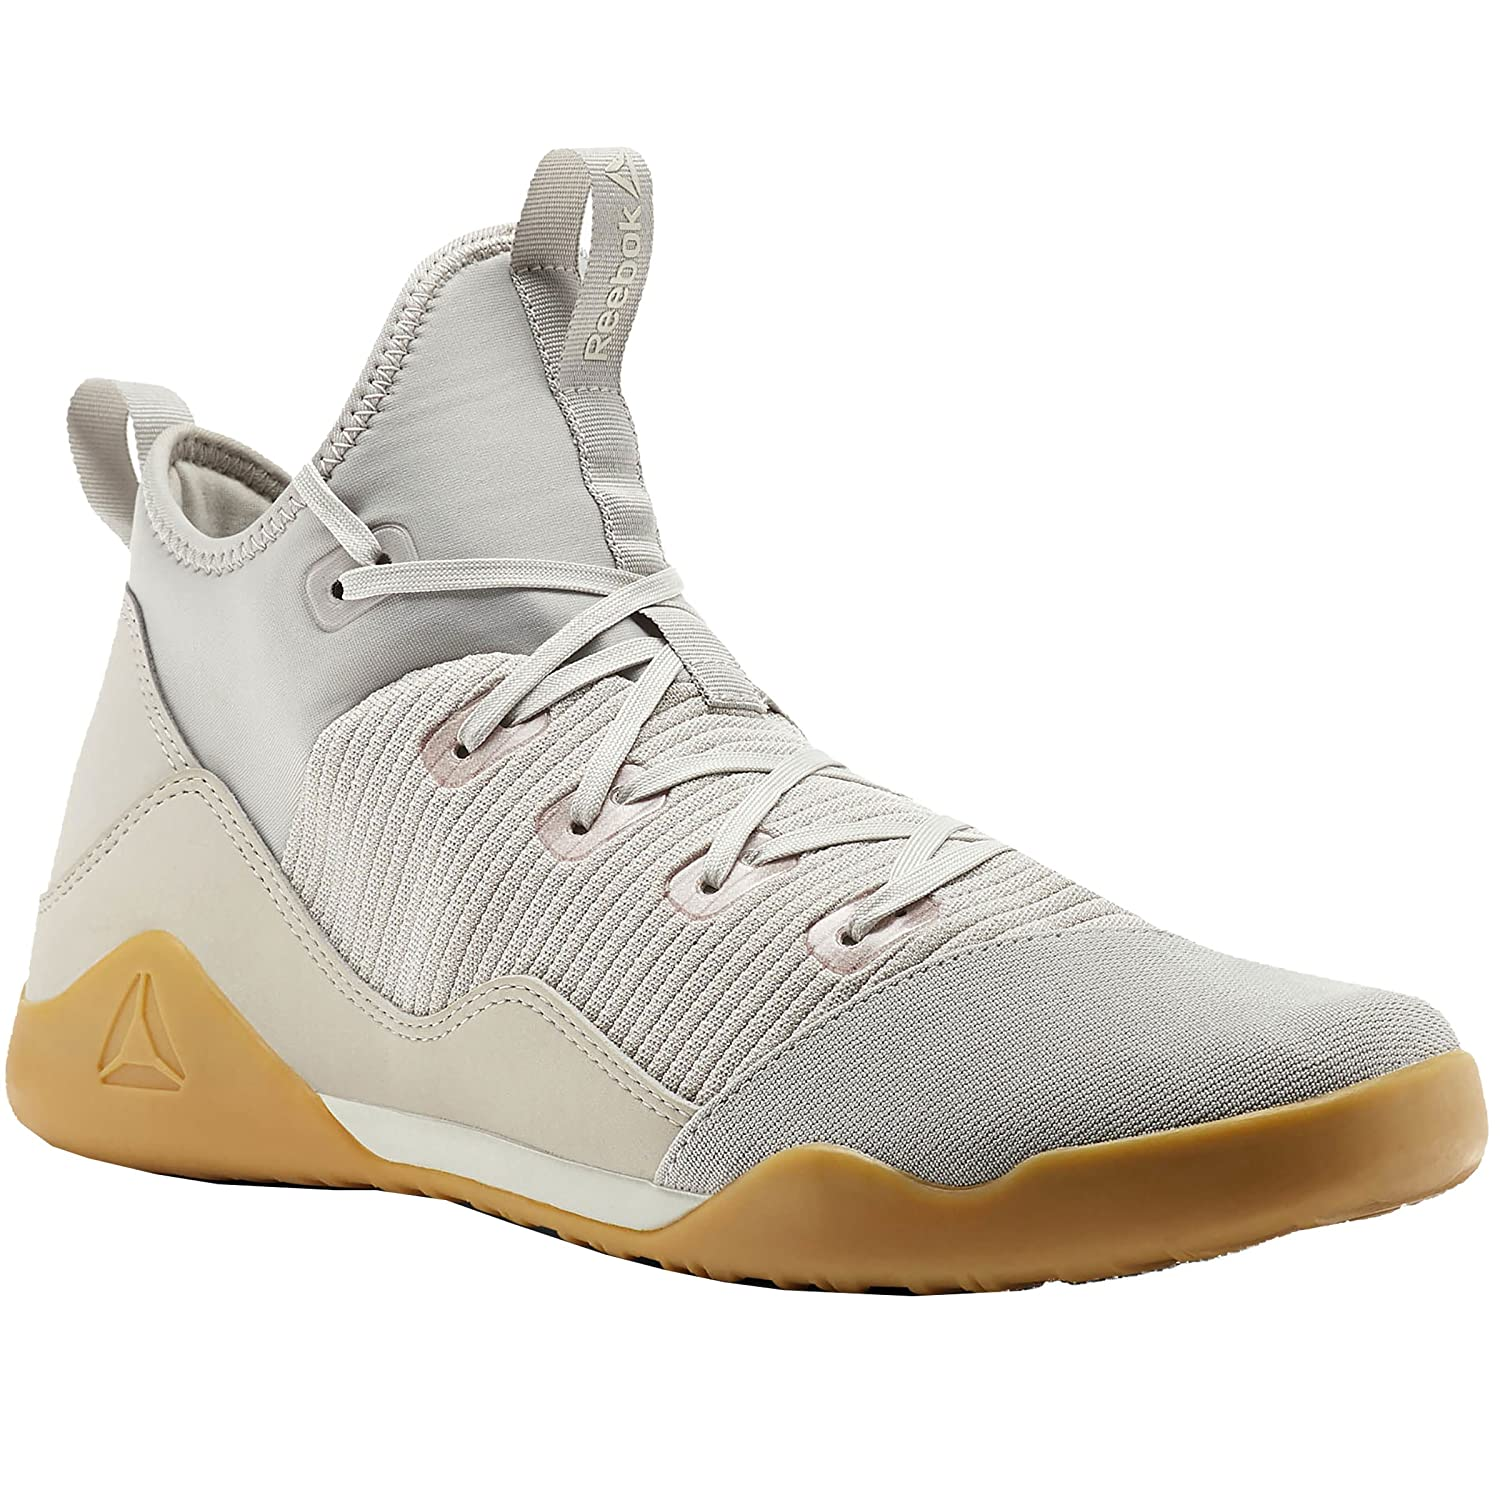 [リーボック] メンズ COMBAT NOBLE TRAINER 8 D(M) US Men's Sandstone/Chalk/Ash Grey B0727NDX49